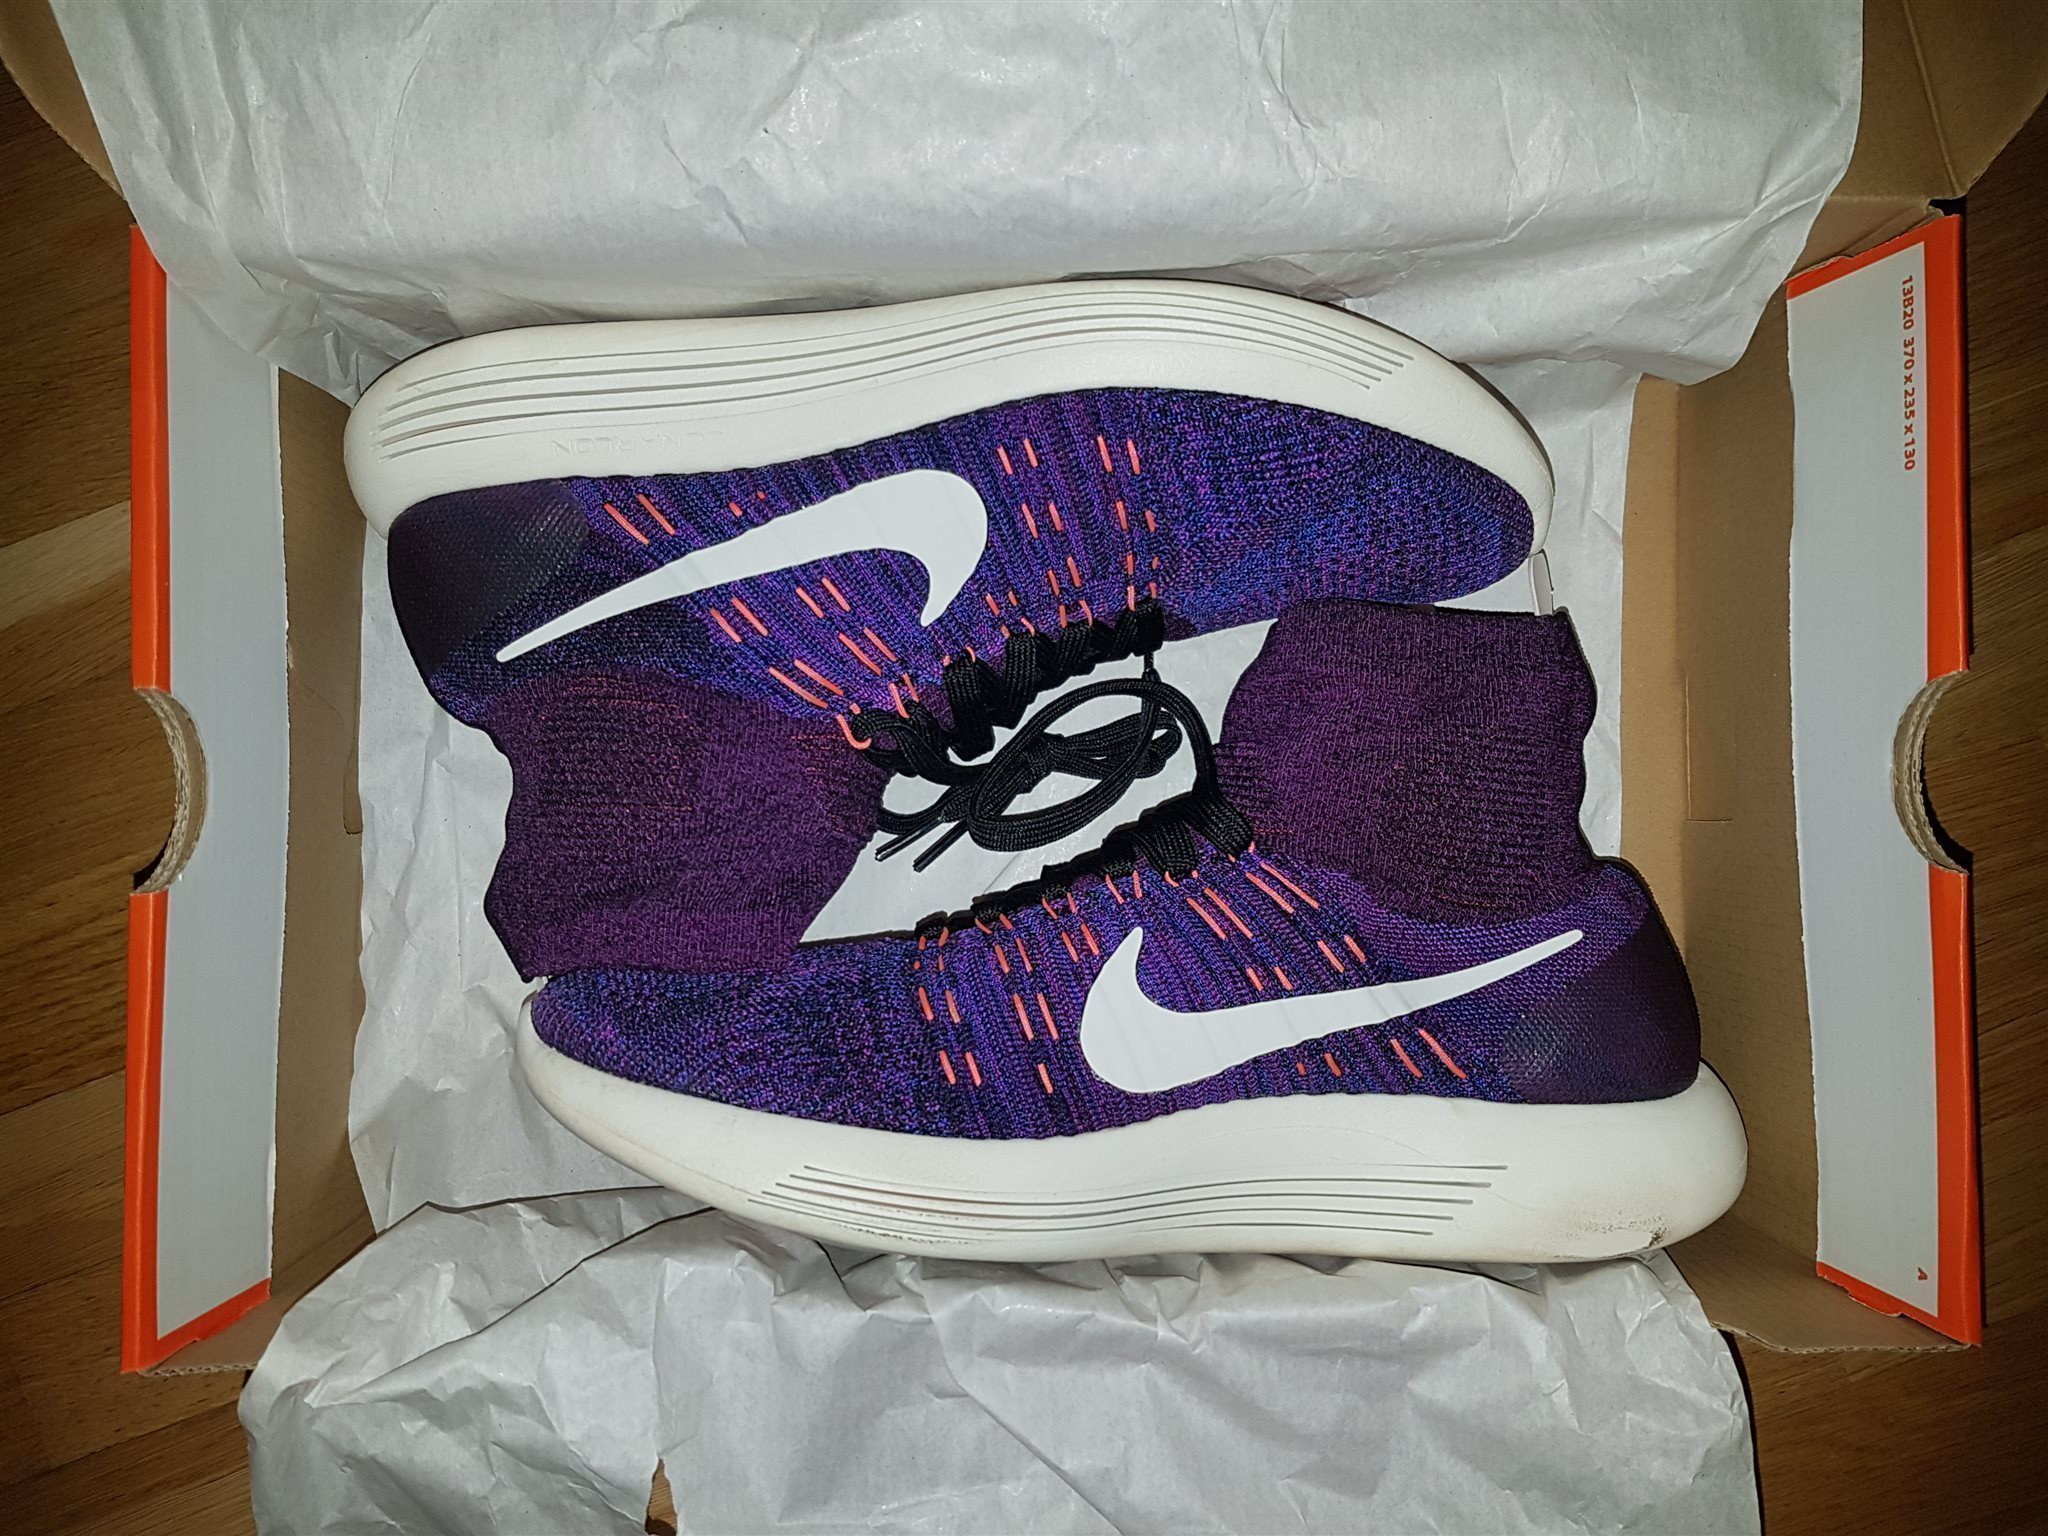 cheap for discount 0c657 02d80 Nike Lunarepic Flyknit, Lila, strl 45,5. 2 besökare. Nike Lunarepic Flyknit,  Lila, strl 45,5